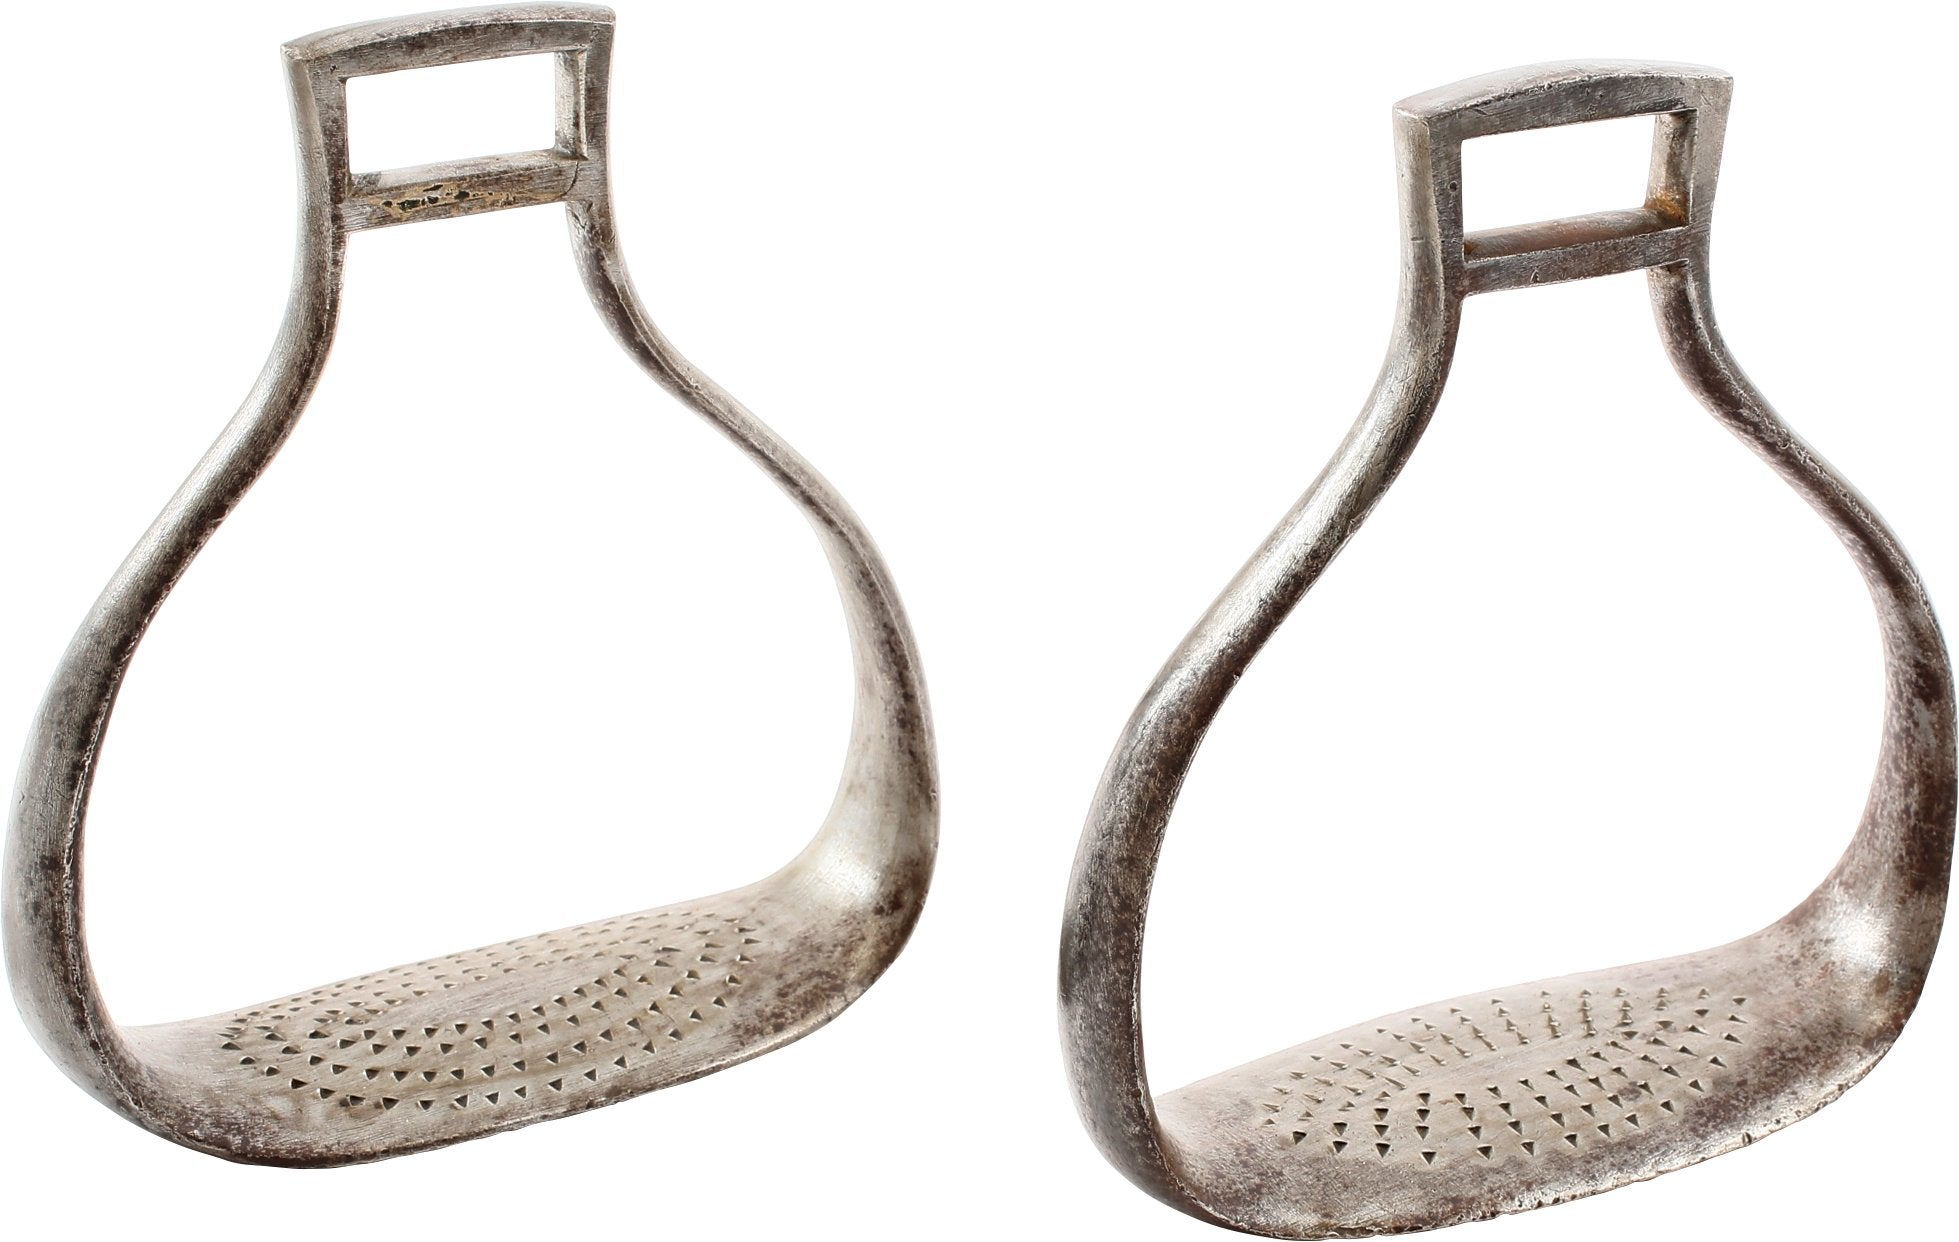 IMPERIAL RUSSIAN CAVALRY STIRRUPS